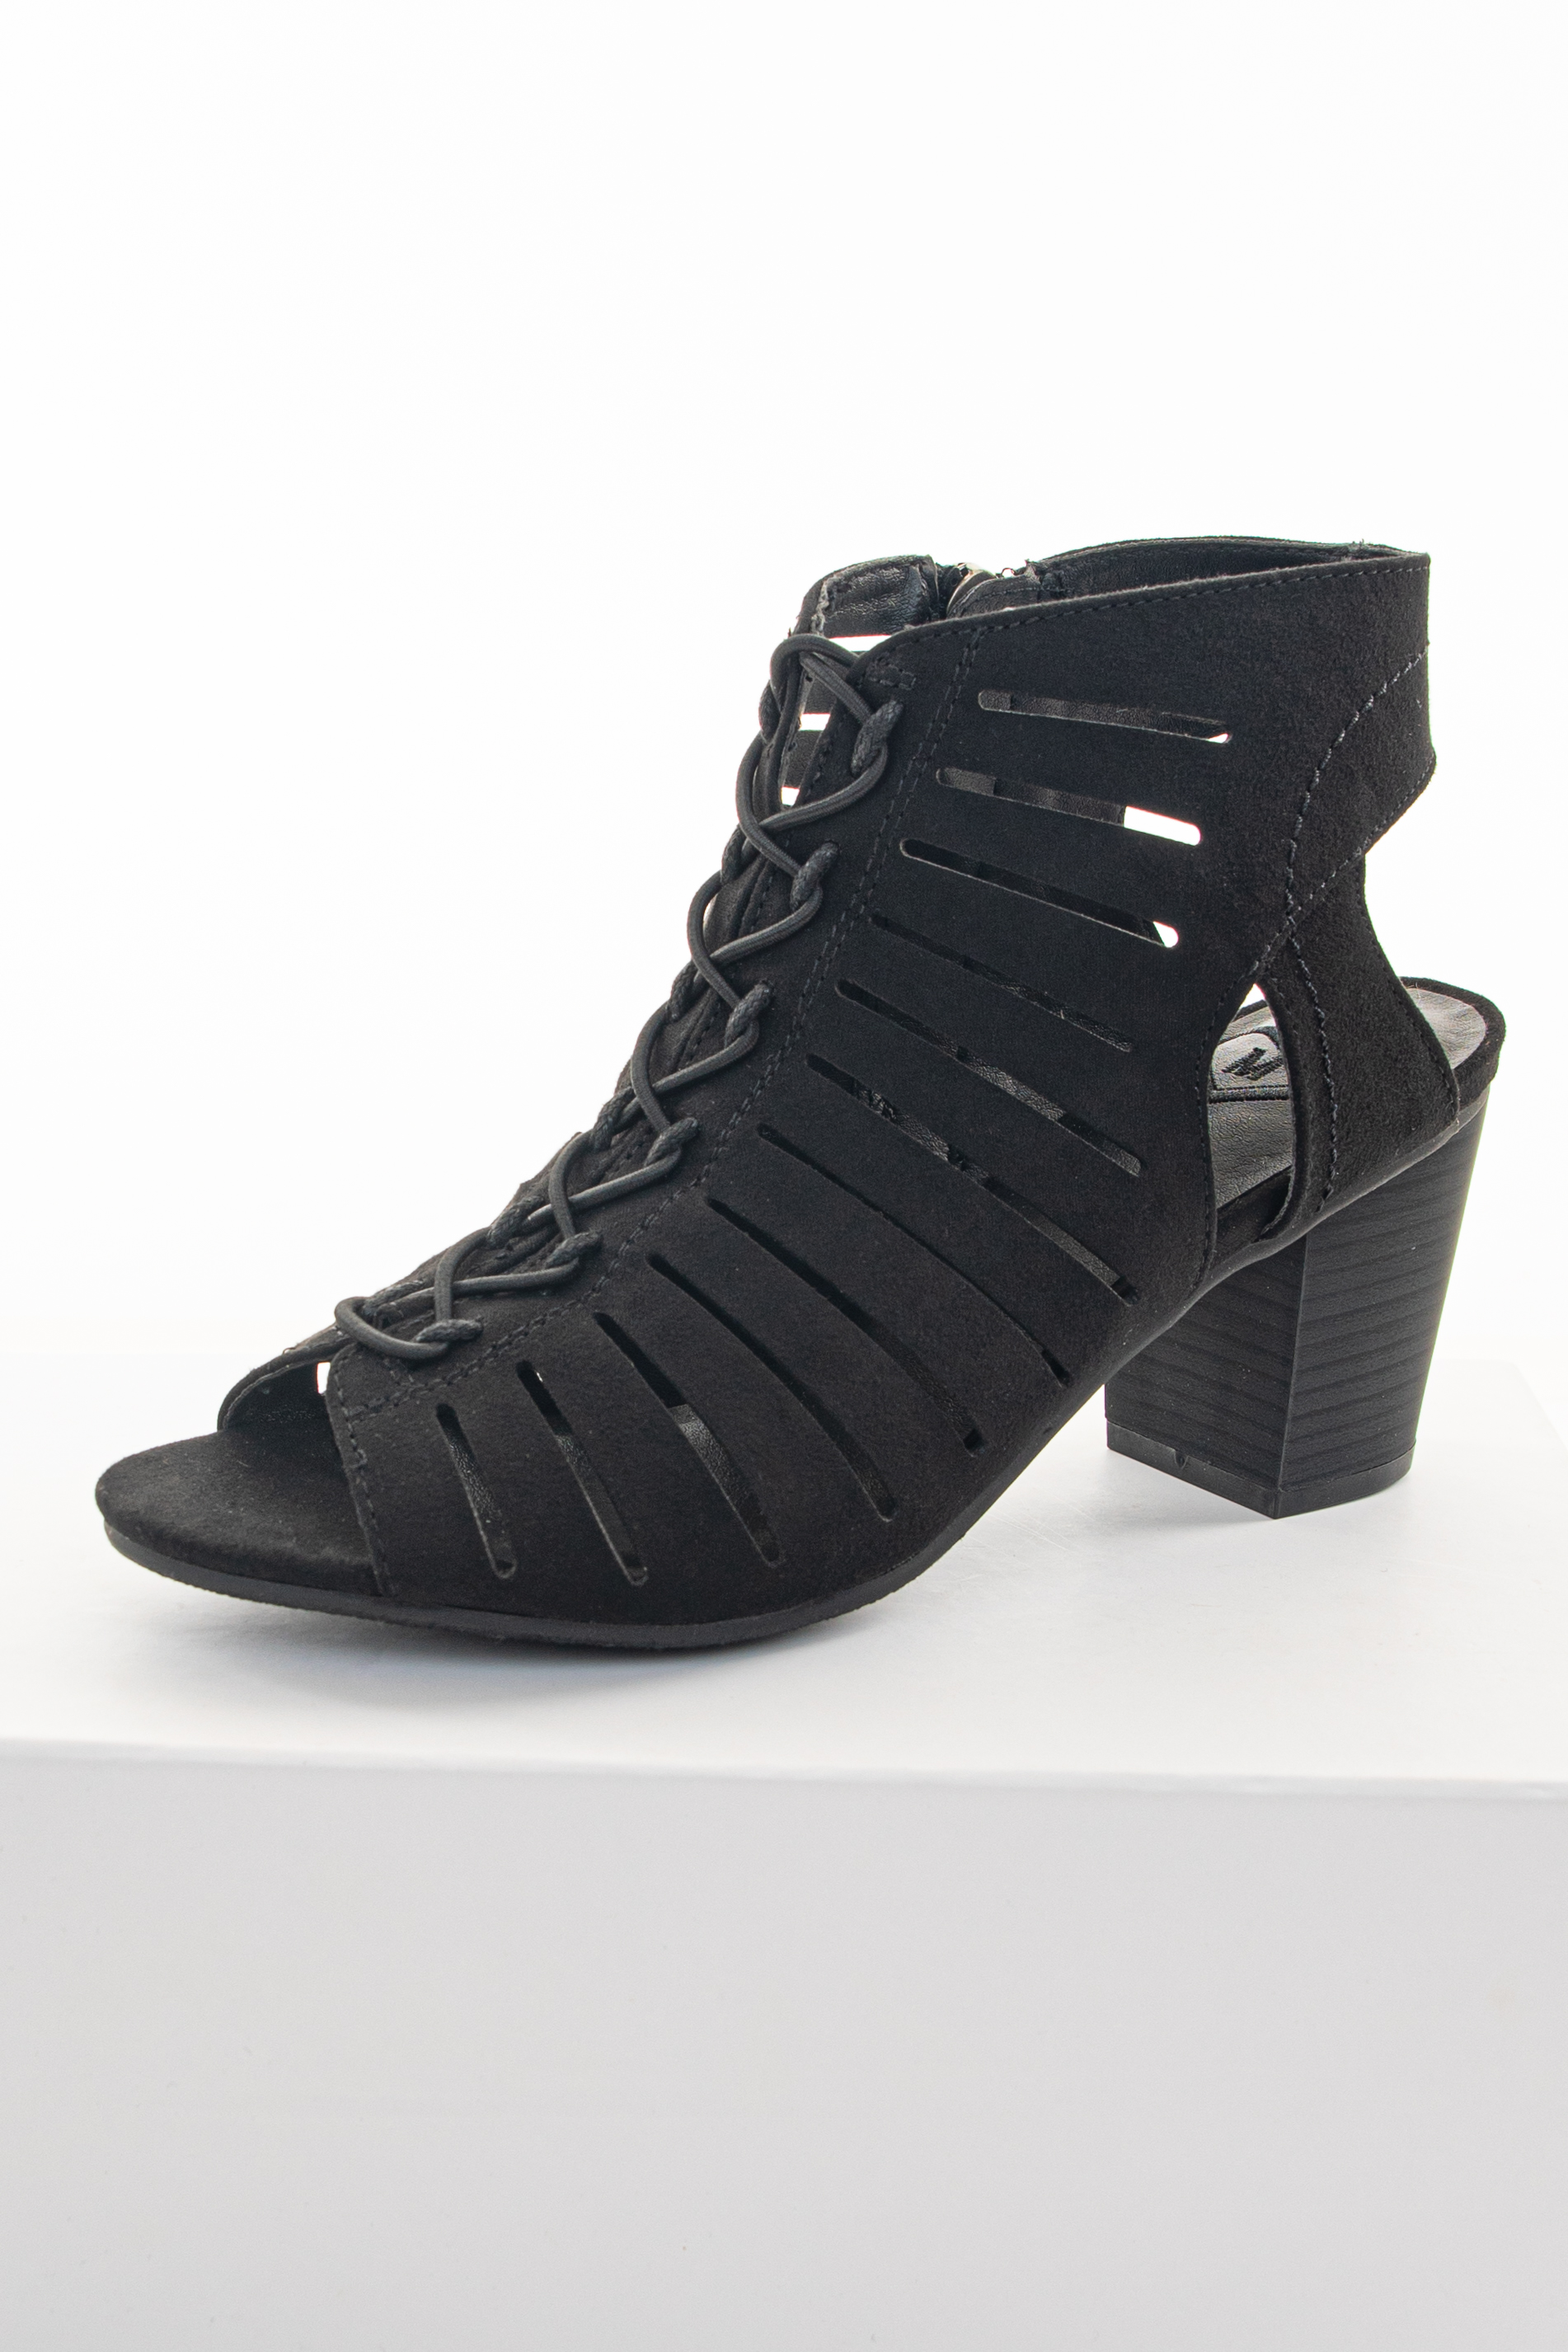 Obsidian Black Heeled Lace Up Sandal with Cutouts